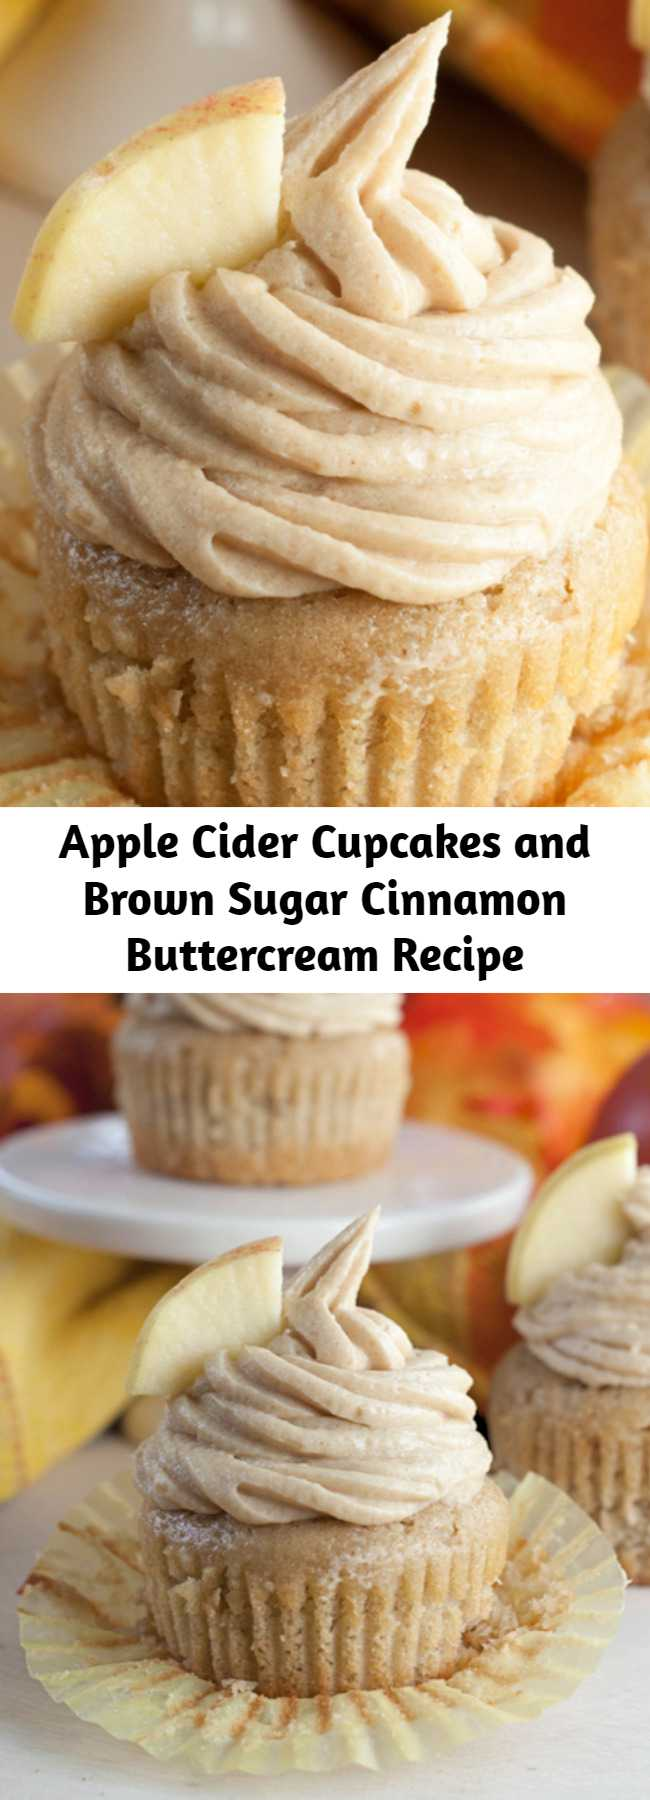 Apple Cider Cupcakes and Brown Sugar Cinnamon Buttercream Recipe - Moist and flavorful recipe for Apple Cider Cupcakes made from scratch with Brown Sugar Cinnamon Buttercream Frosting makes for a mouthwatering fall dessert!